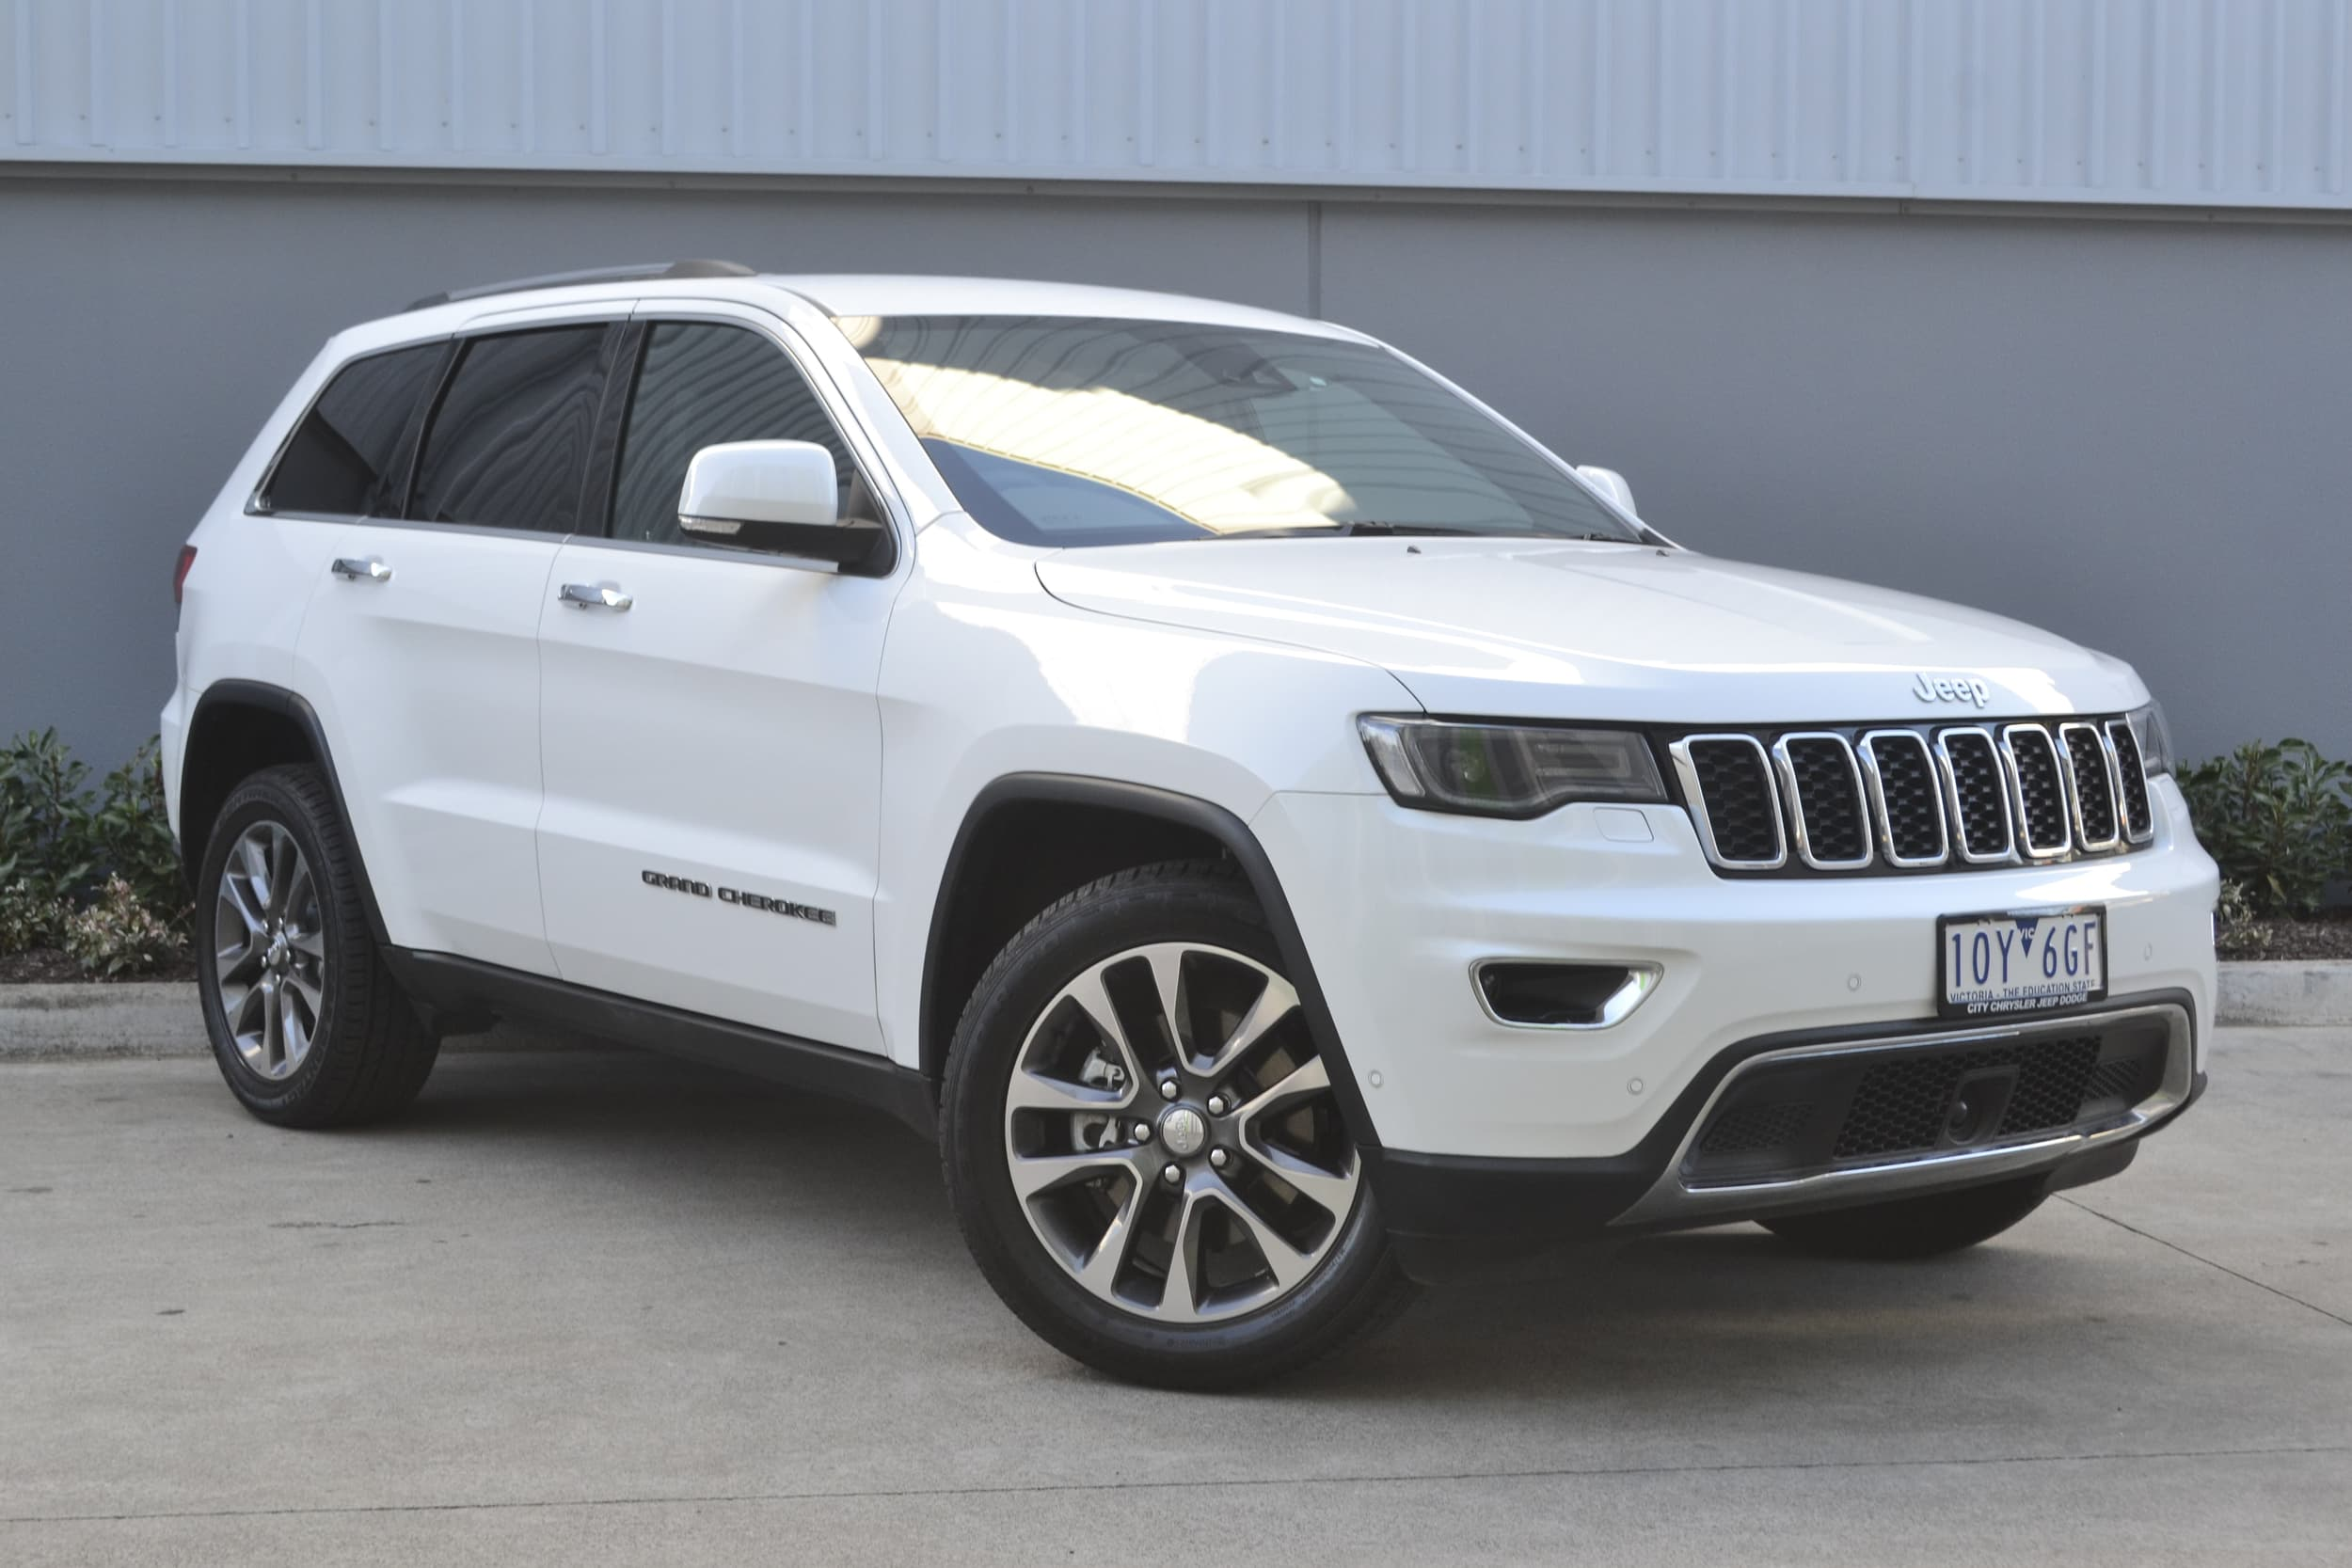 2019 Jeep Grand Cherokee Limited Auto 4x4 MY19 - image 1